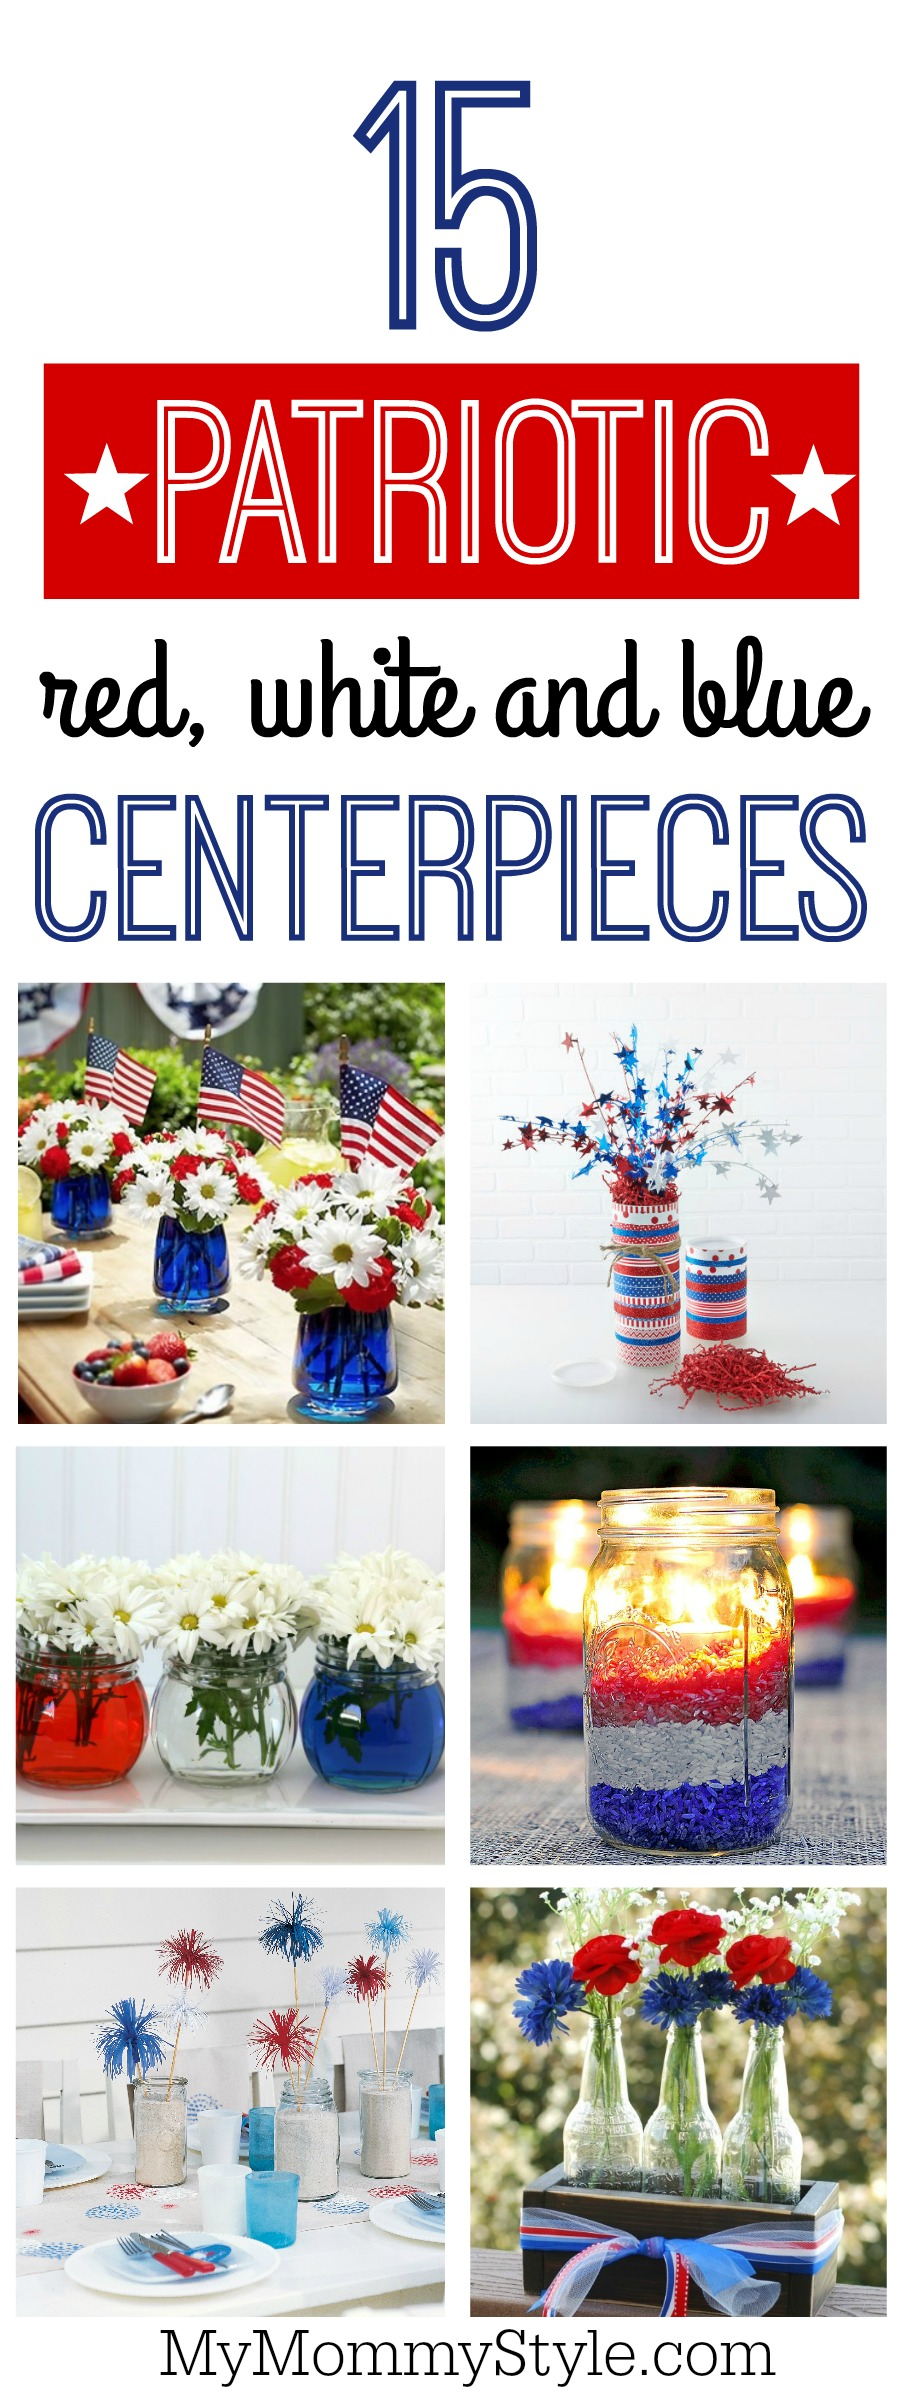 Whether you're planning a party for Memorial Day, the 4th of July or a summer BBQ, add these patriotic centerpieces to make your party festive and fun. via @mymommystyle